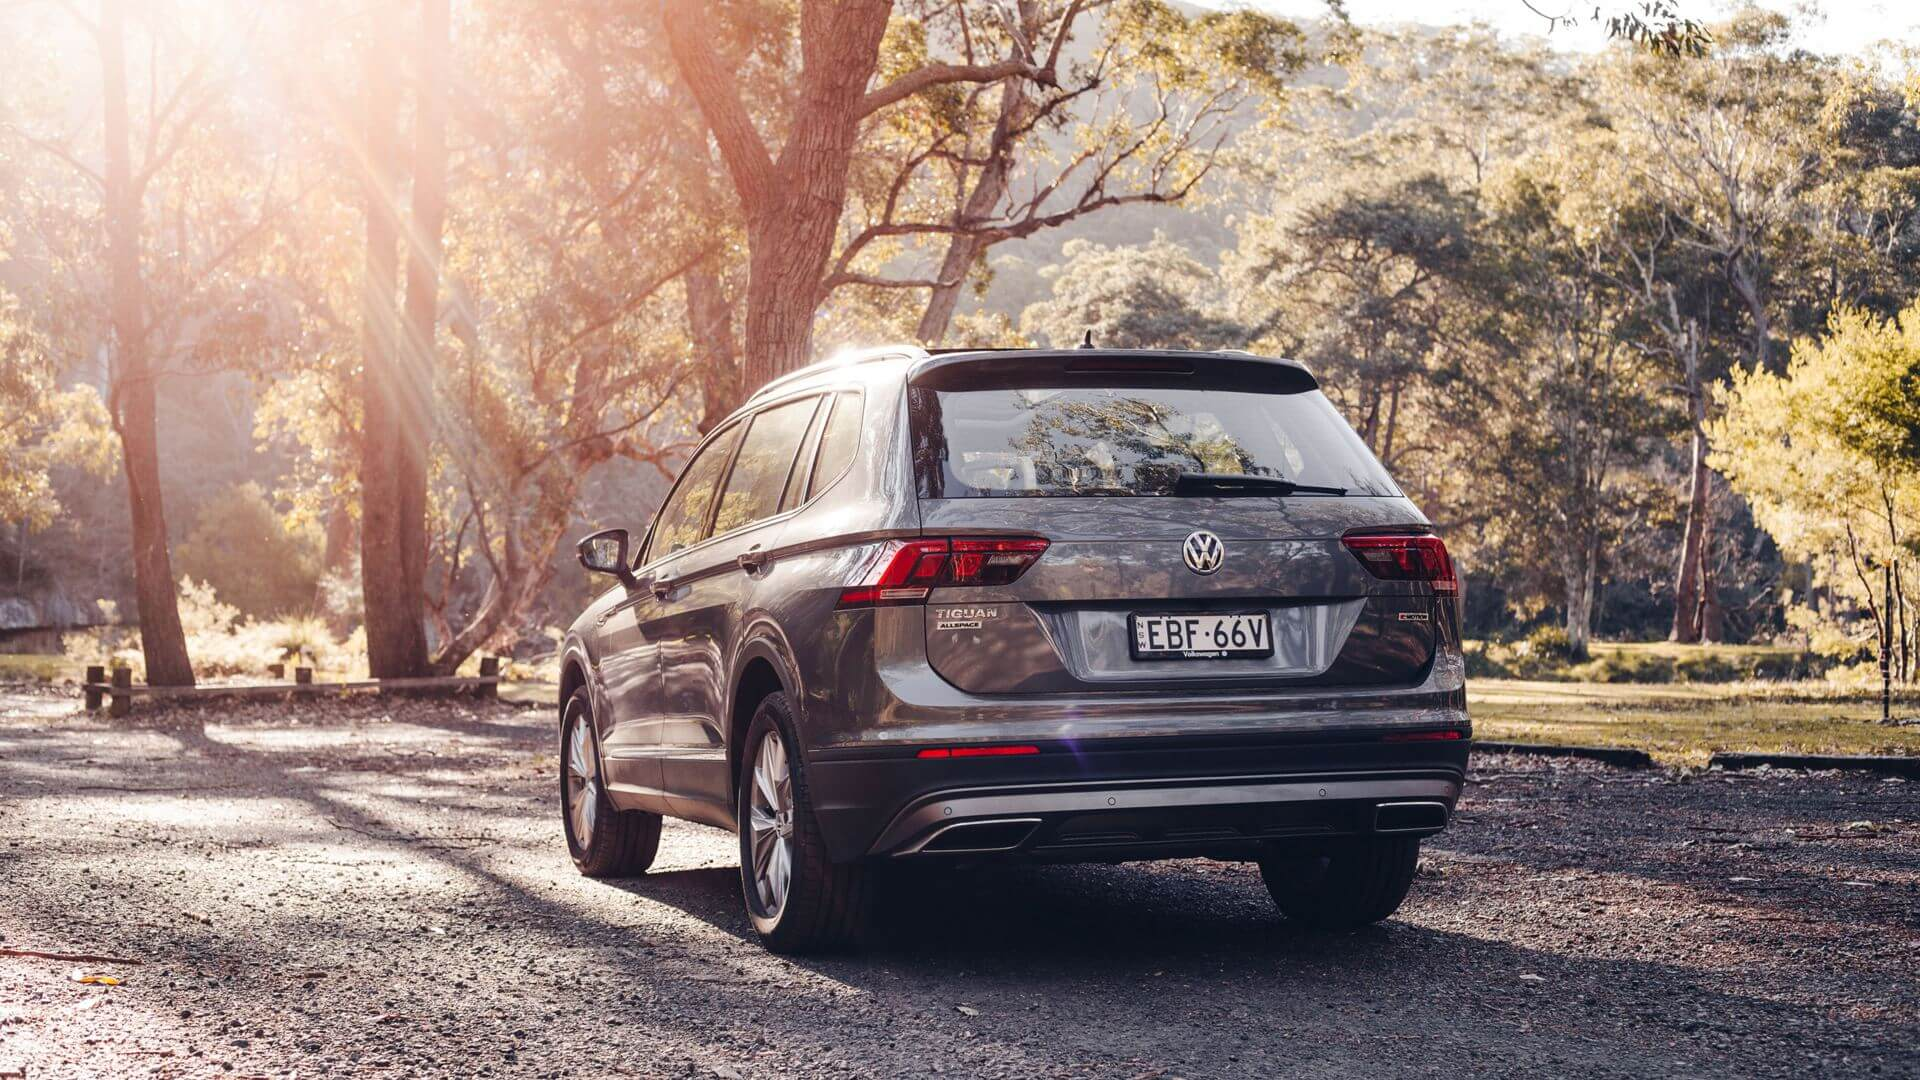 Tiguan Allspace <strong>Tiguan Allspace</strong><br>The SUV that can do it all.